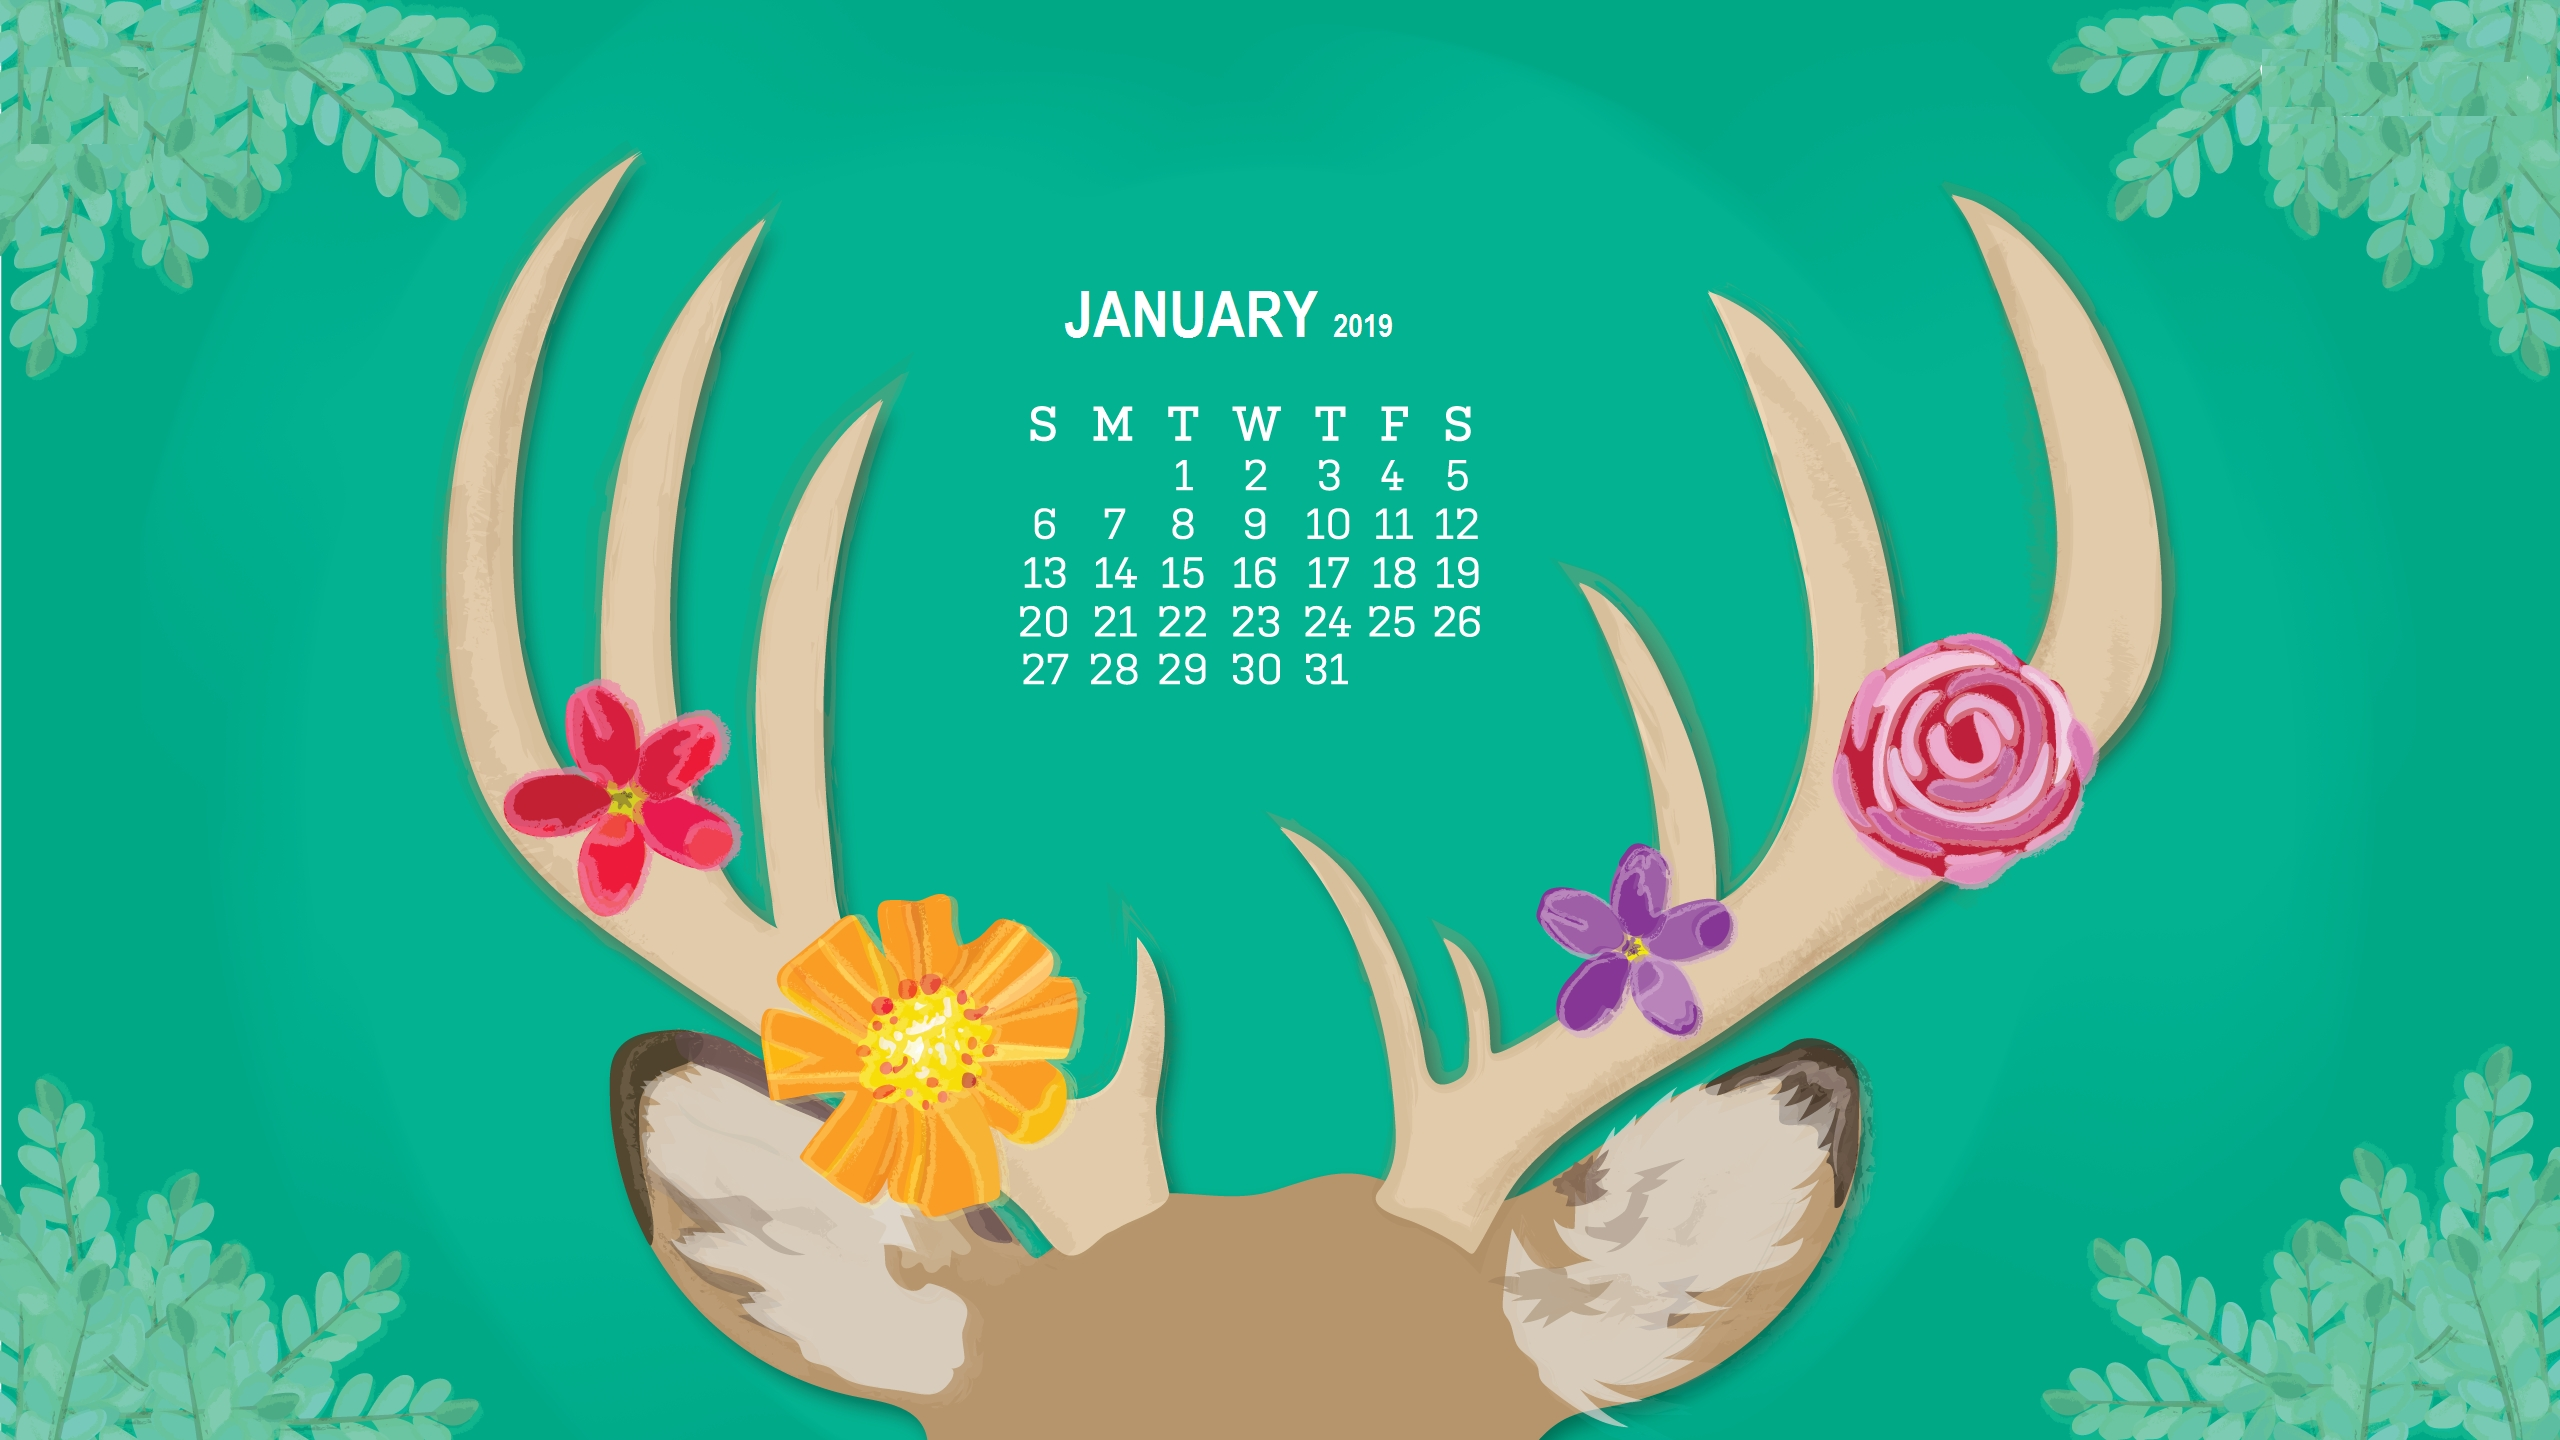 monthly desktop calendar 2019 wallpapers calendar 2019::January 2019 Desktop Calendar Wallpaper